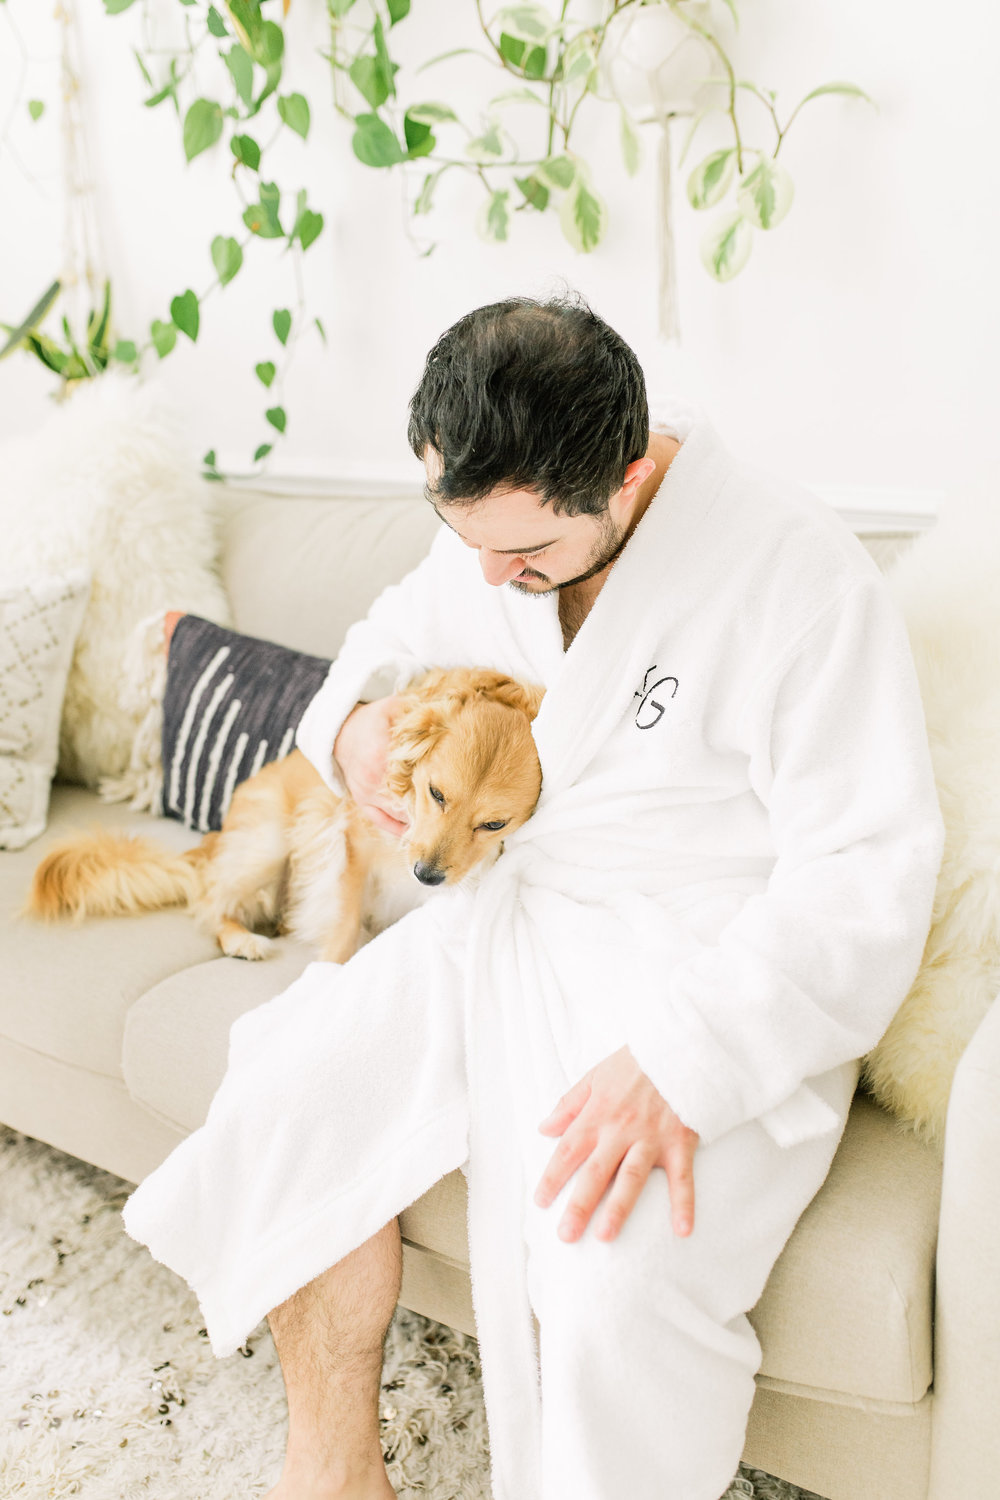 Joyfullygreen The Company Store Unisex White Fluffy Robe Monogramed Father's Day Gift Idea. Mens Robes.jpg